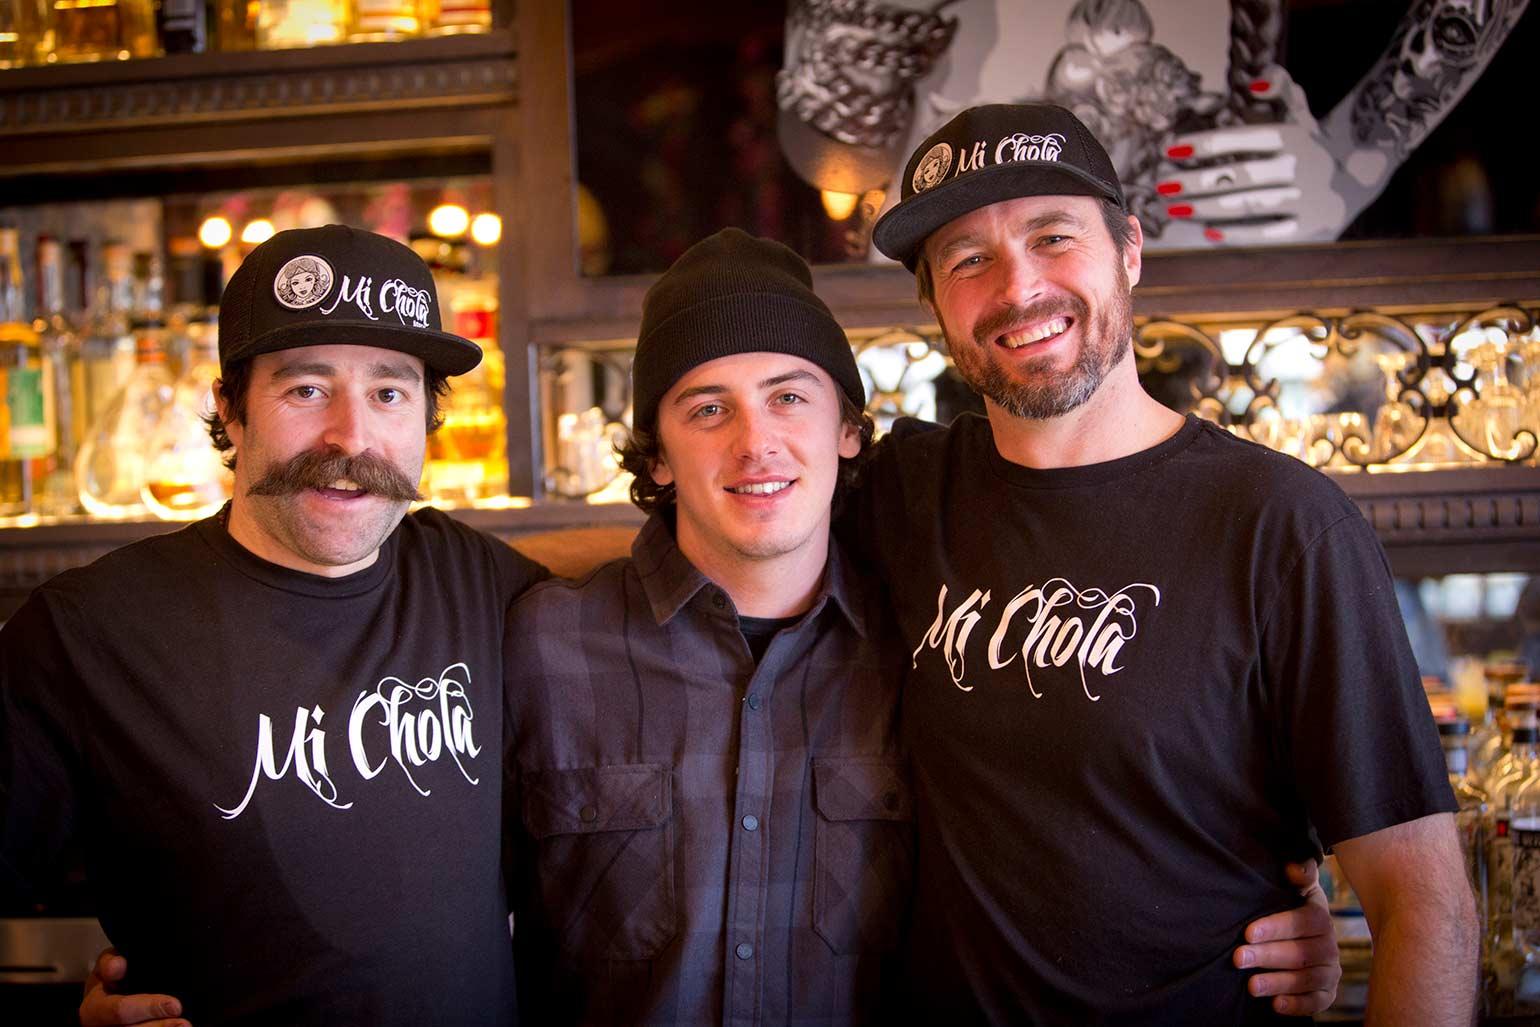 Mark McMorris poses with workers from Mi Chola in Aspen Colorado